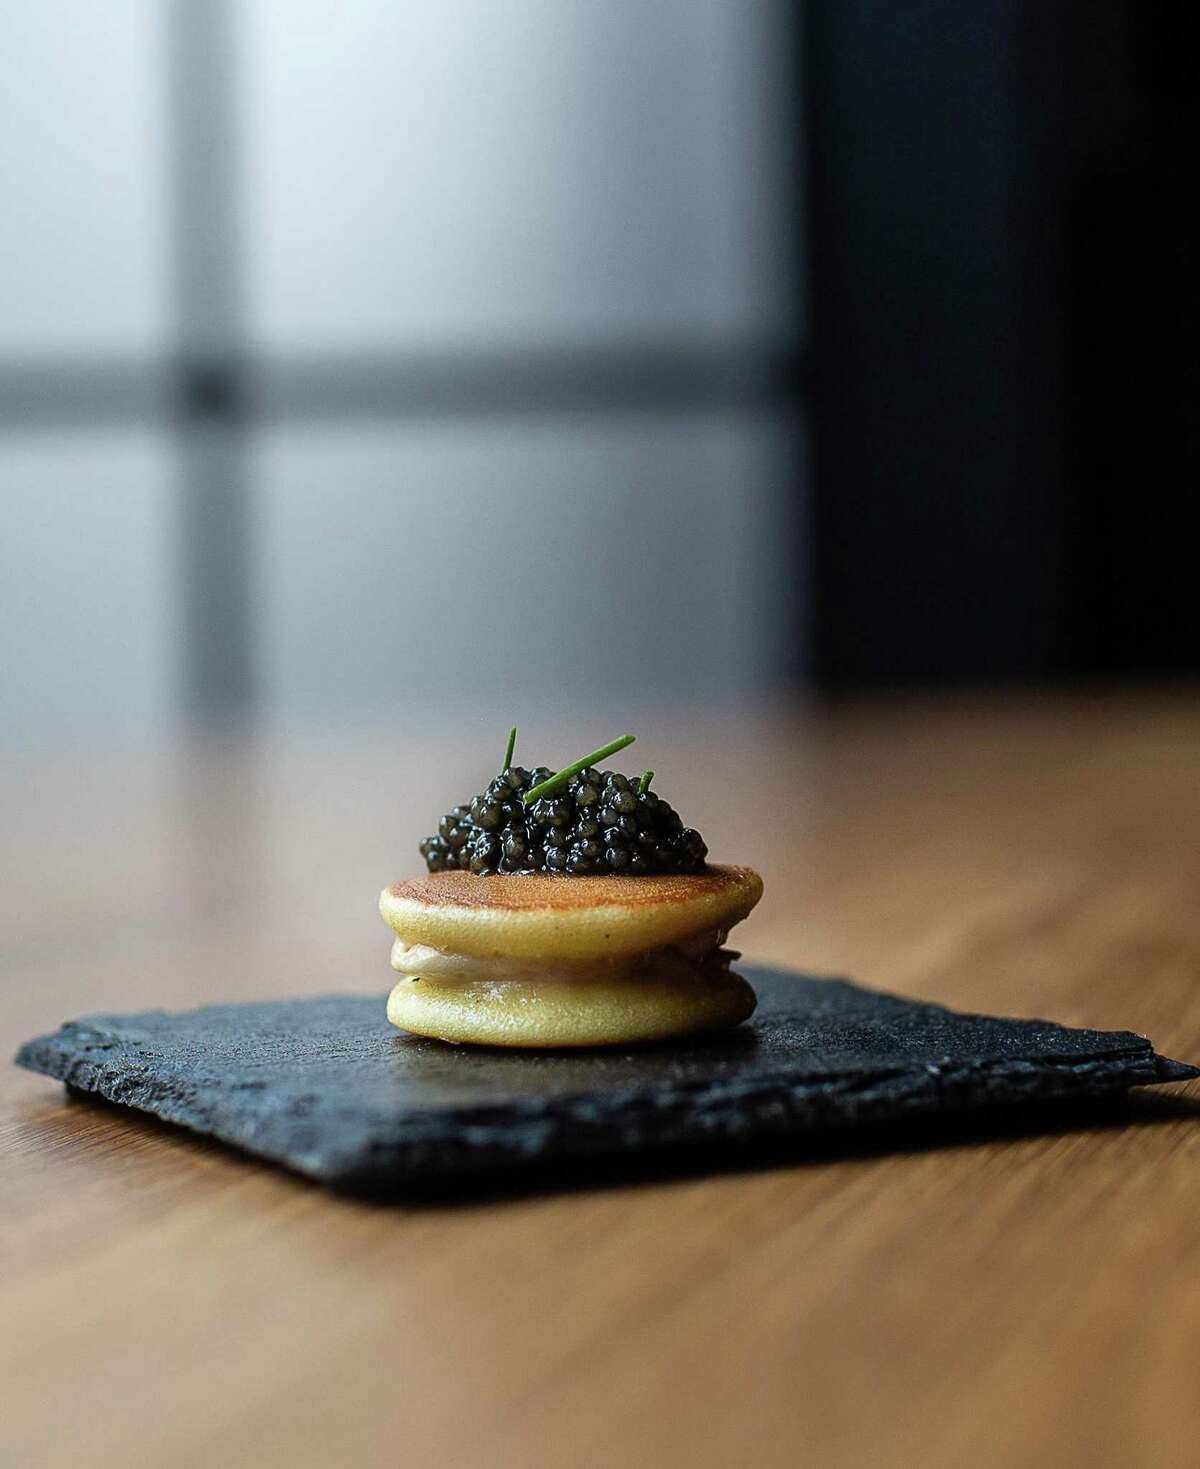 A banana-filled dorayaki is topped with caviar and chives at Restaurant Nisei in San Francisco.